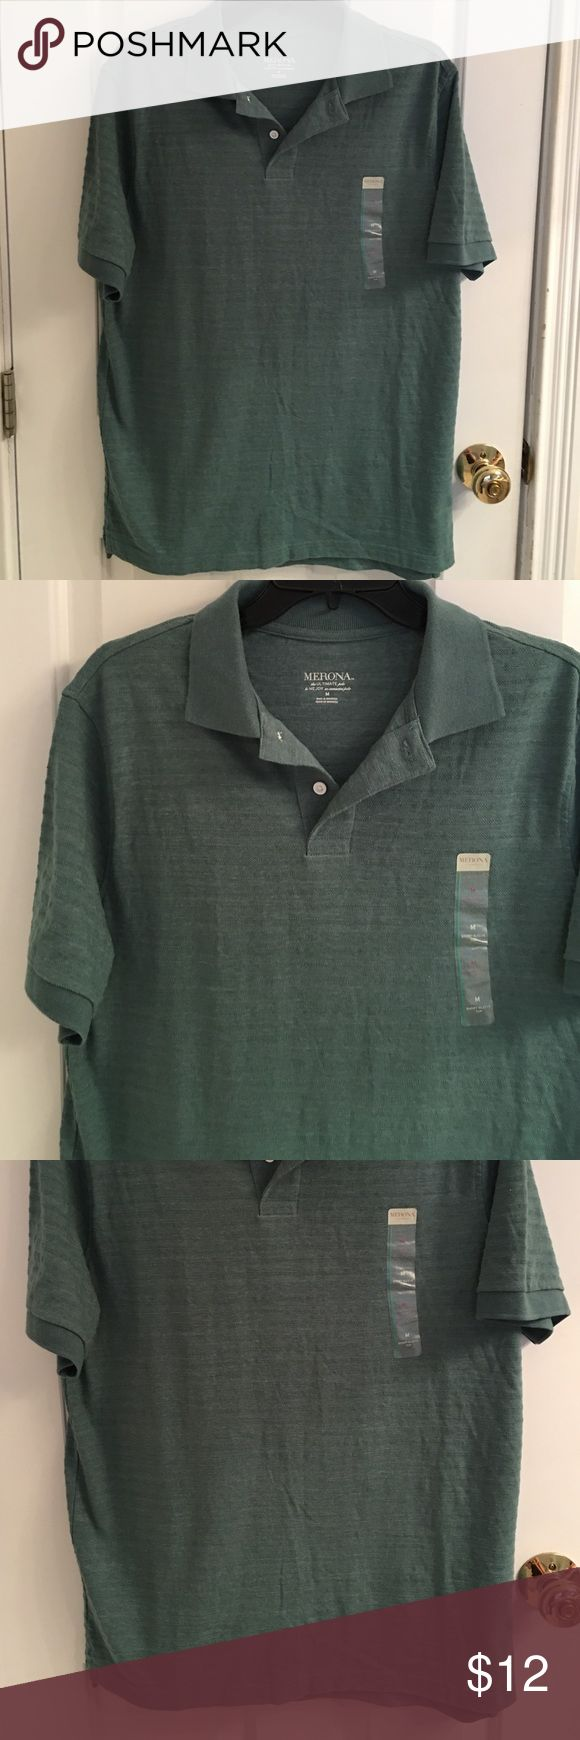 NWT- Merona Short Sleeve Green Polo Shirt NWT- Men's Merona short sleeve polo shirt. Size medium. Excellent condition. 60% Cotton 40% Polyester Merona Shirts Polos